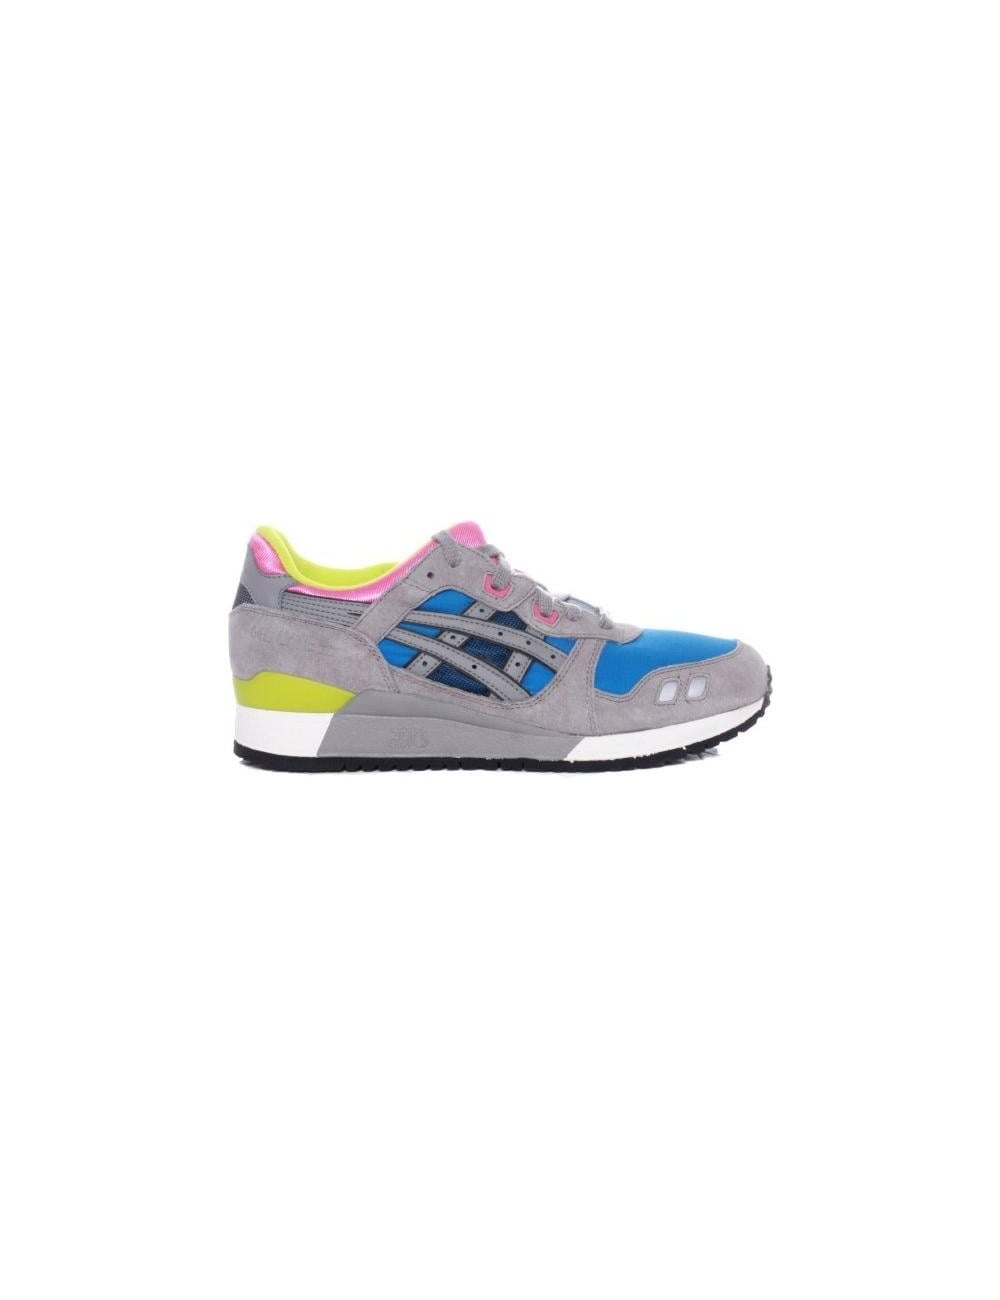 classic lace up in buy Gel-Lyte III - Royal Blue/Grey